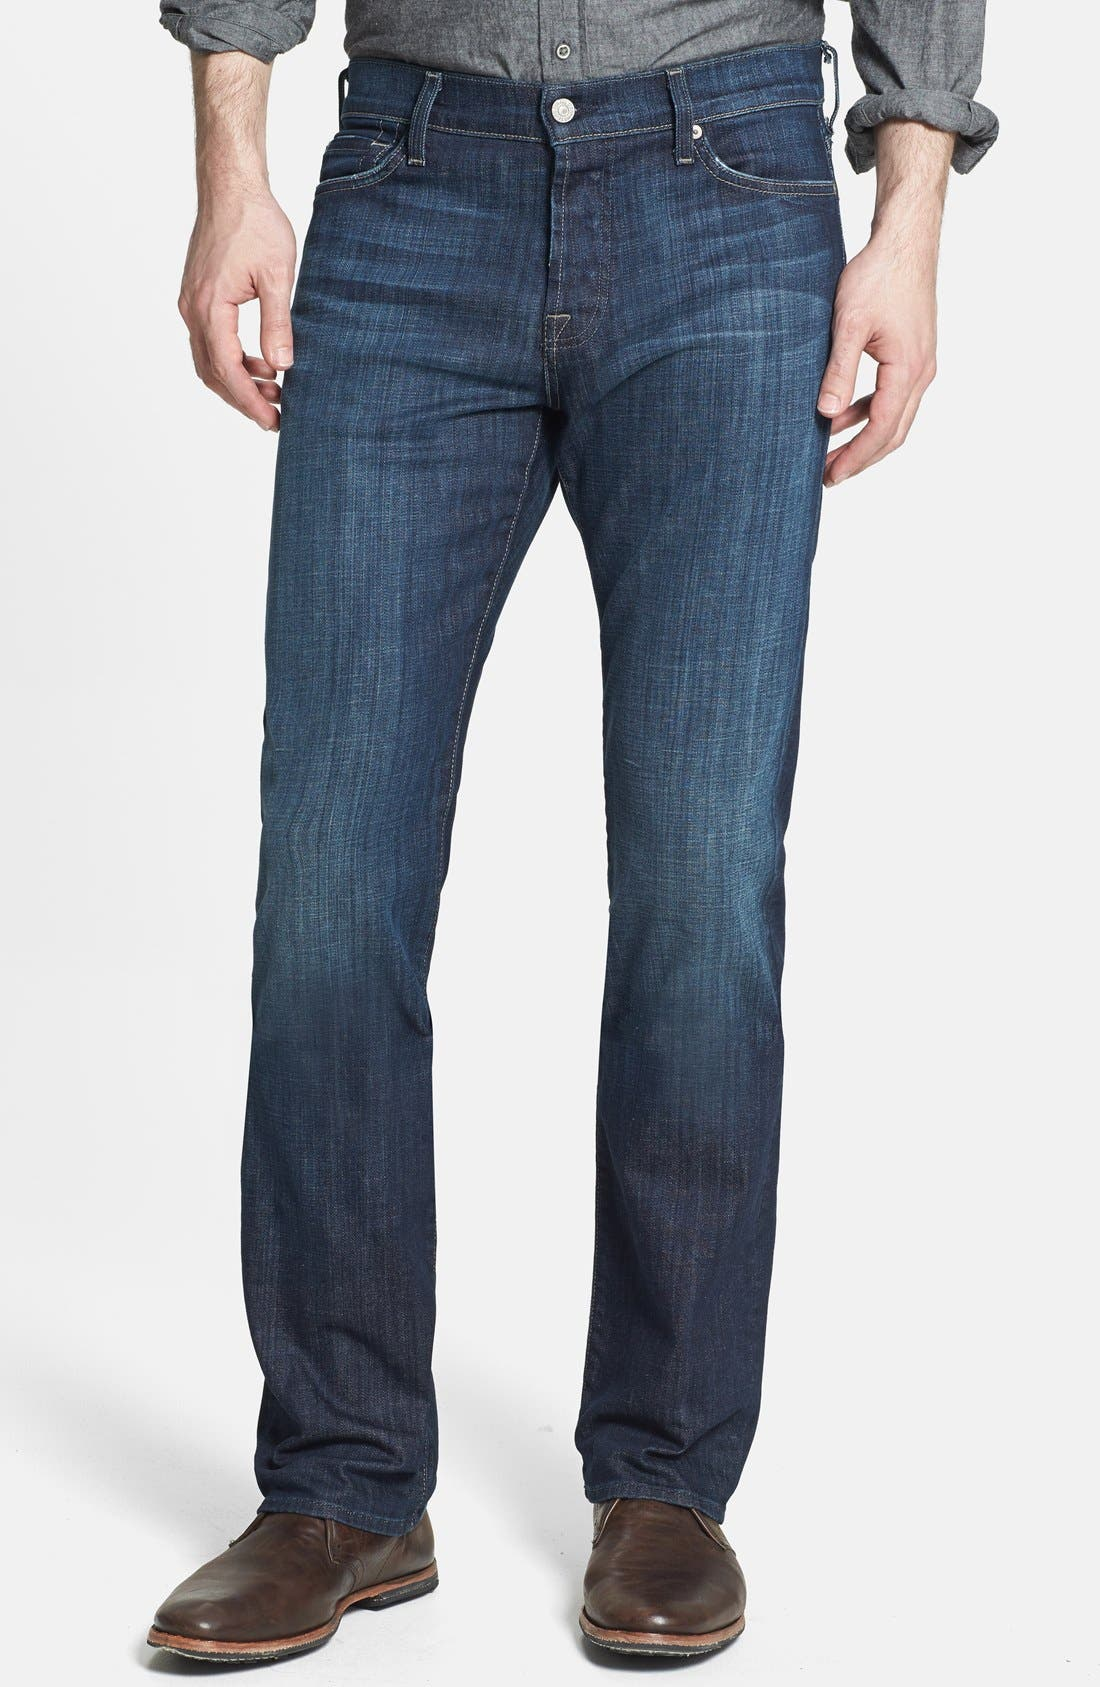 Alternate Image 1 Selected - 7 For All Mankind® 'Standard' Straight Leg Jeans (Los Angeles Dark)